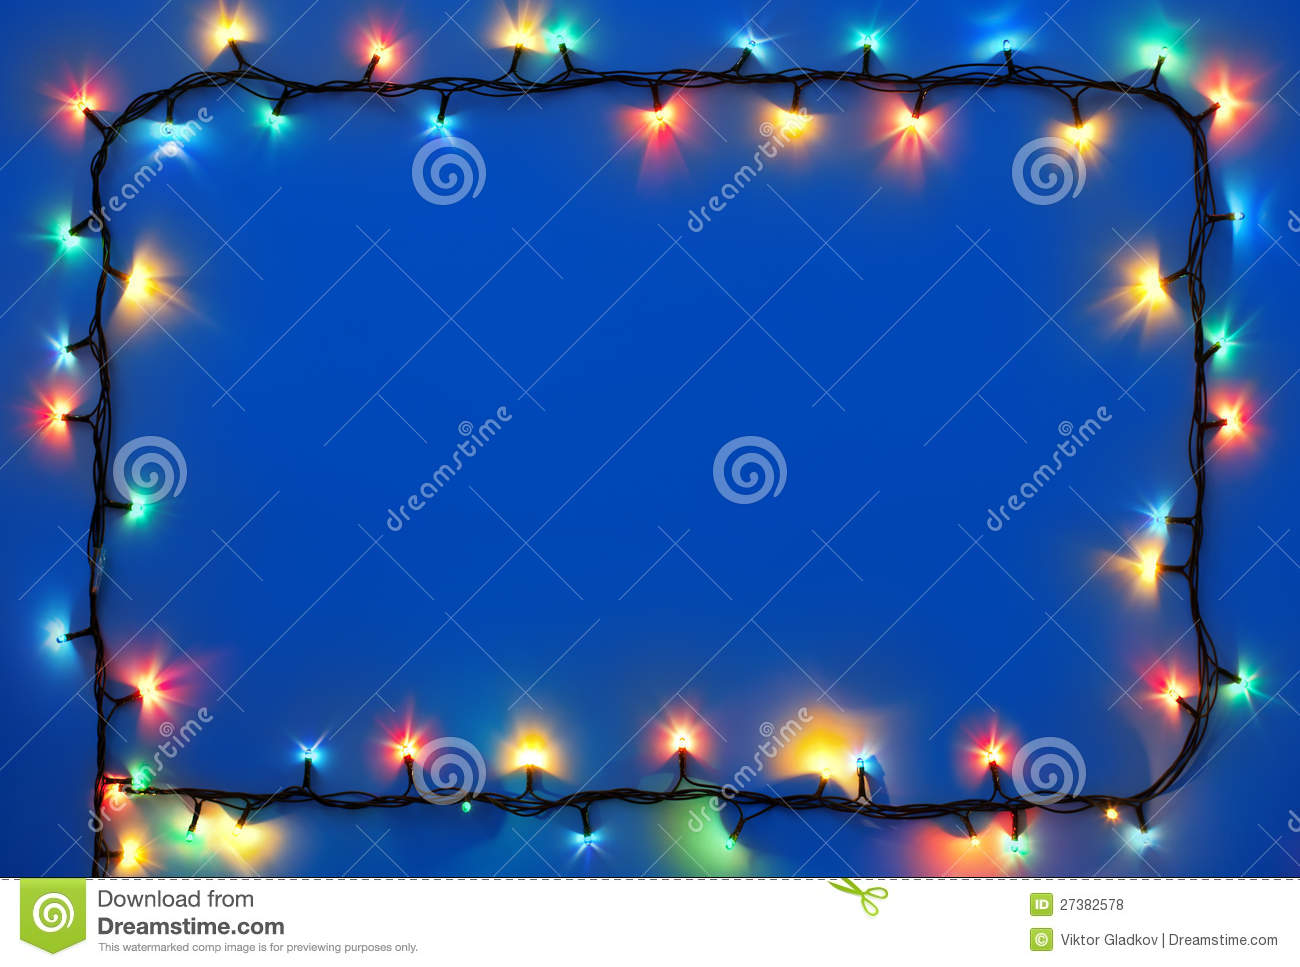 Christmas Lights On Dark Blue Background Royalty Free Stock Photos ...